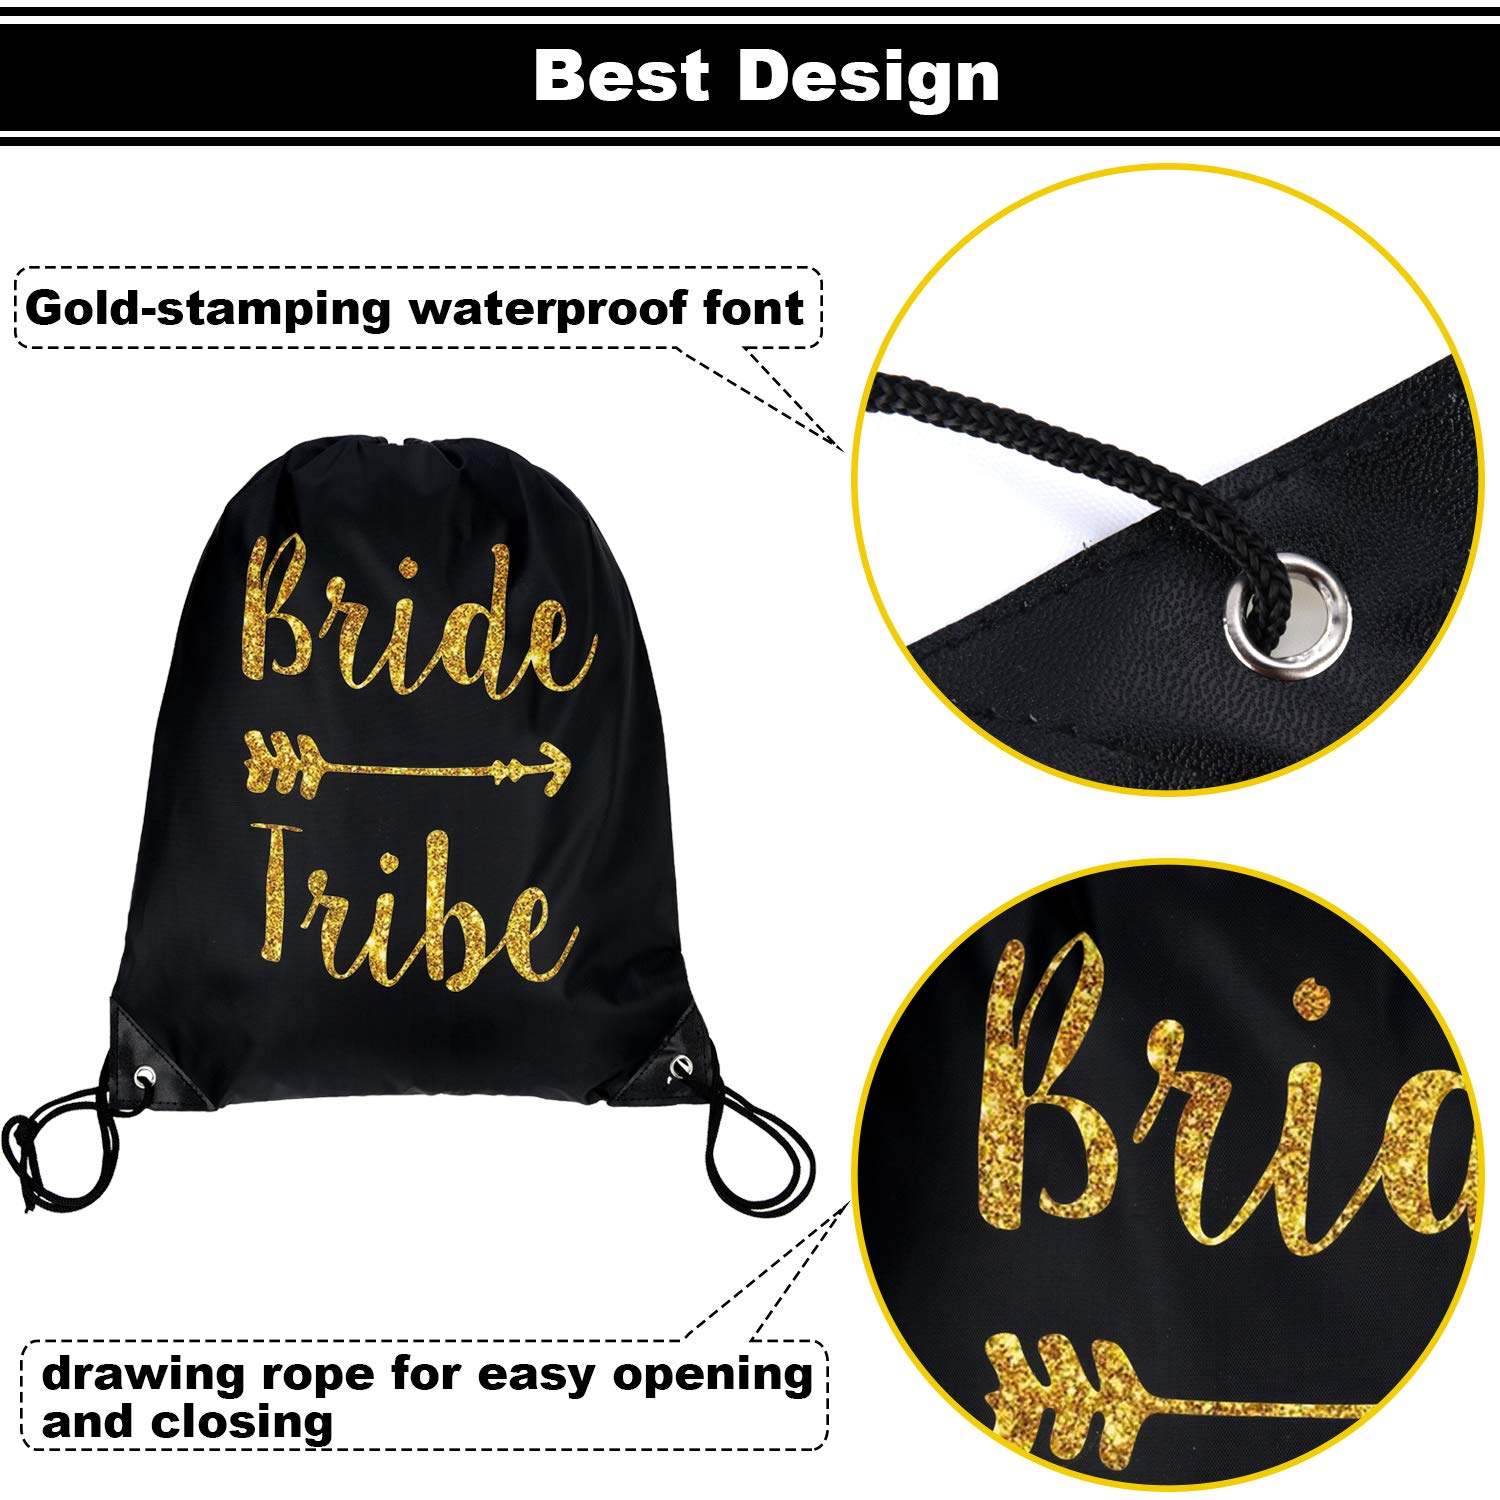 12 Pieces Bride and Bride Tribe Drawstring Bags Wedding Drawstring Gift Bag Bridal Party Favor Bags for Bridesmaids Bridal Party Bridal Shower, 16.5 x 13.4 inch (Black) by Maitys (Image #3)